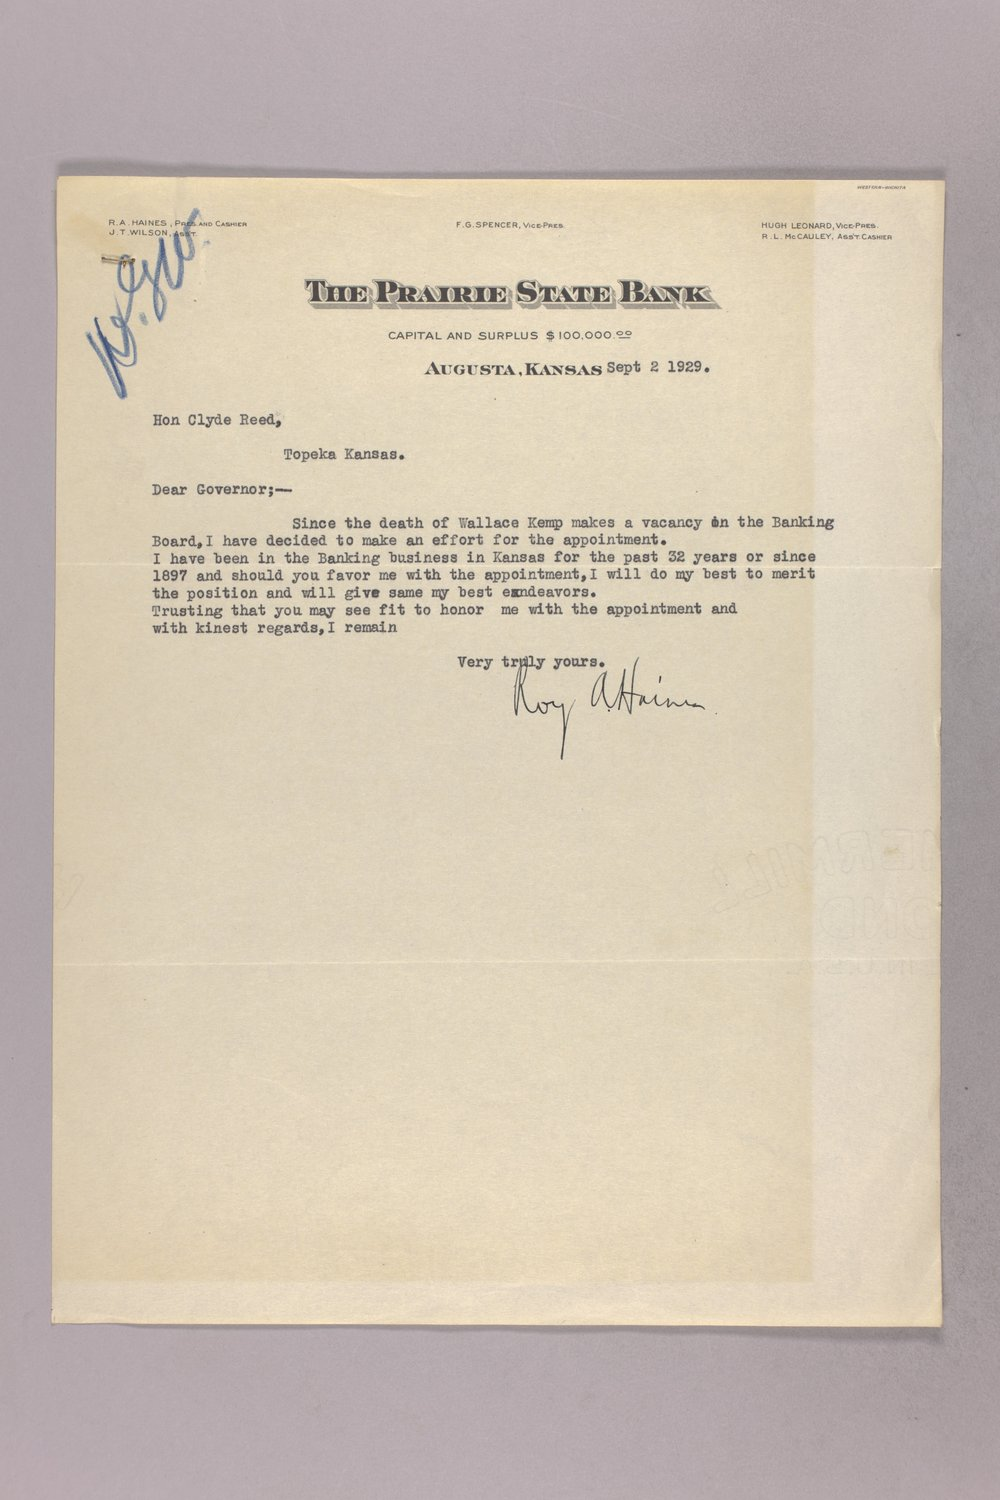 Governor Clyde M. Reed correspondence, Banking Board - 8